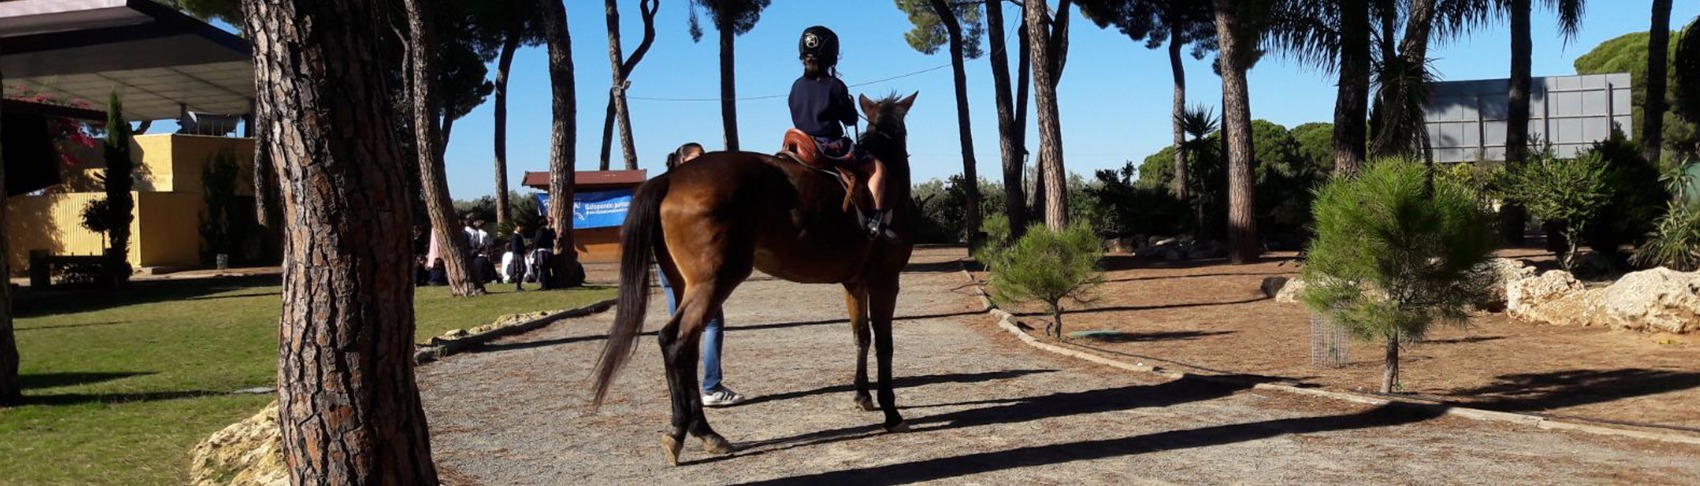 caballos-anglo-arabes-sin-tx